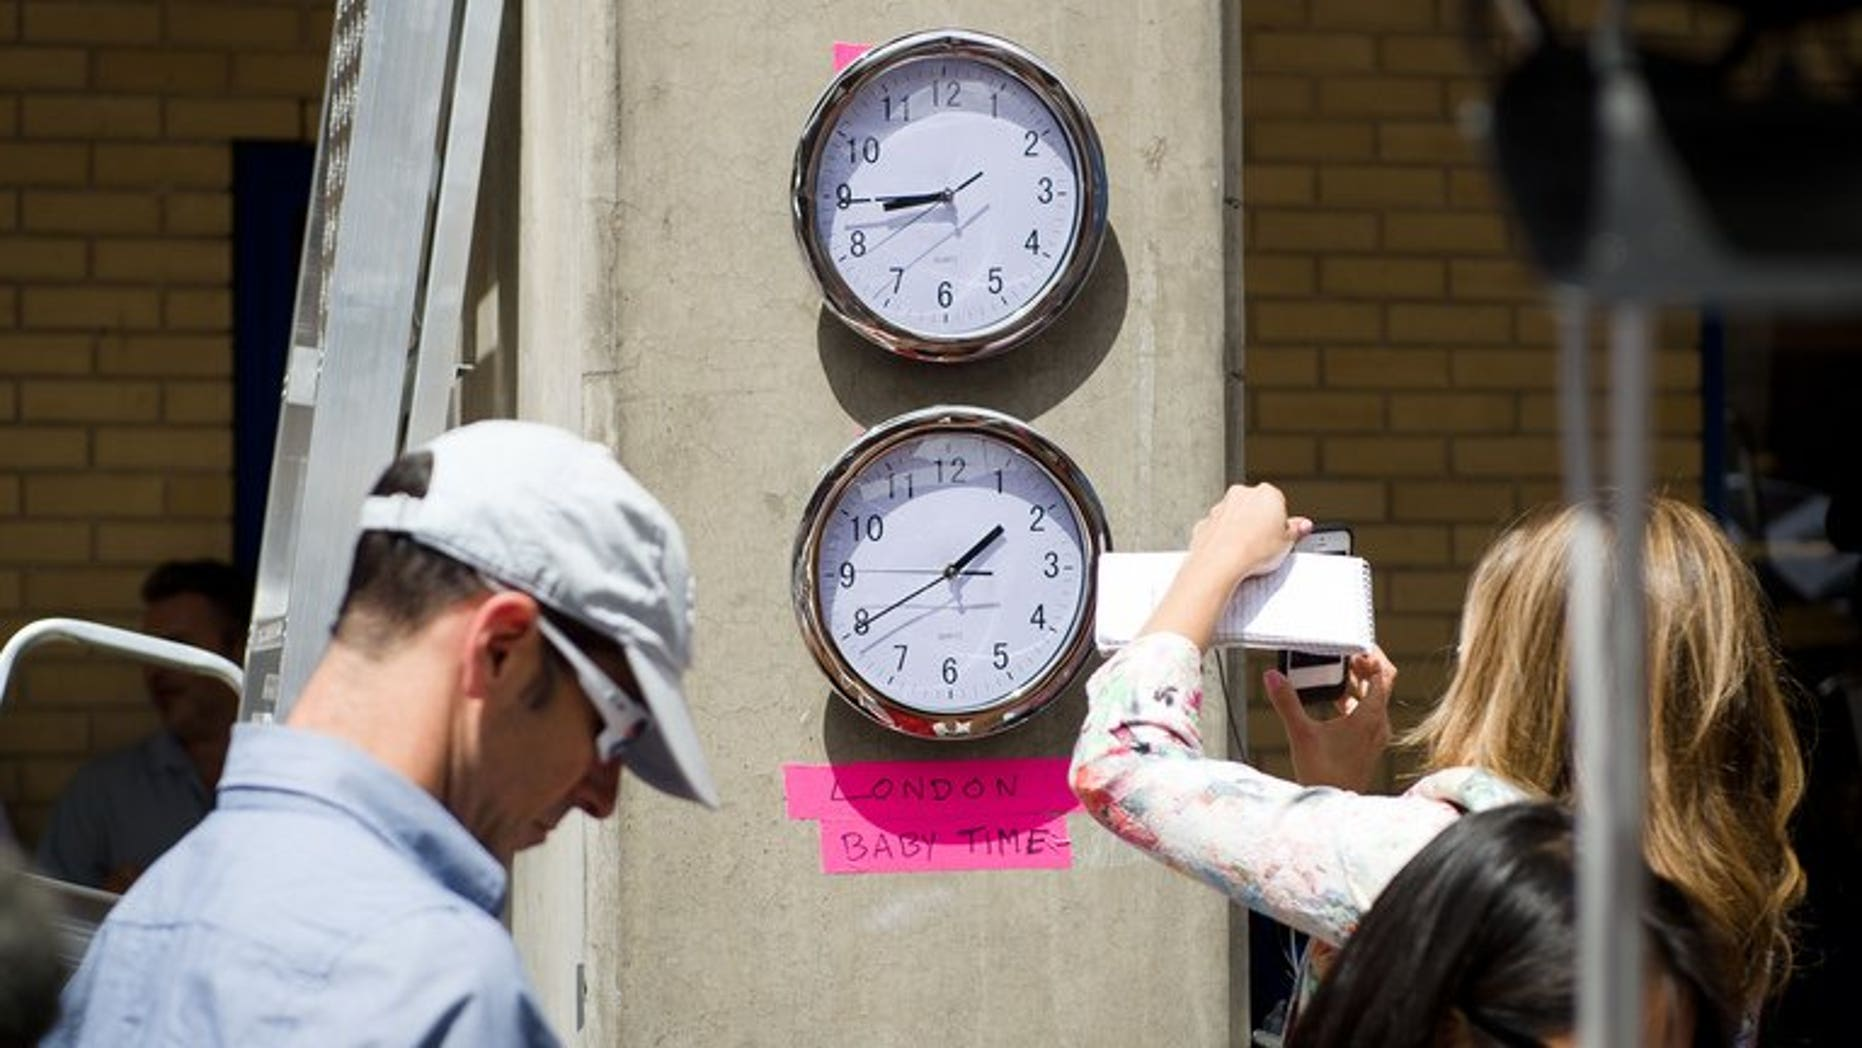 """Clocks showing New York and """"London Baby Time"""" are hung on a wall in the media pen outside the Lindo Wing of Saint Mary's Hospital in London, on July 15, 2013."""